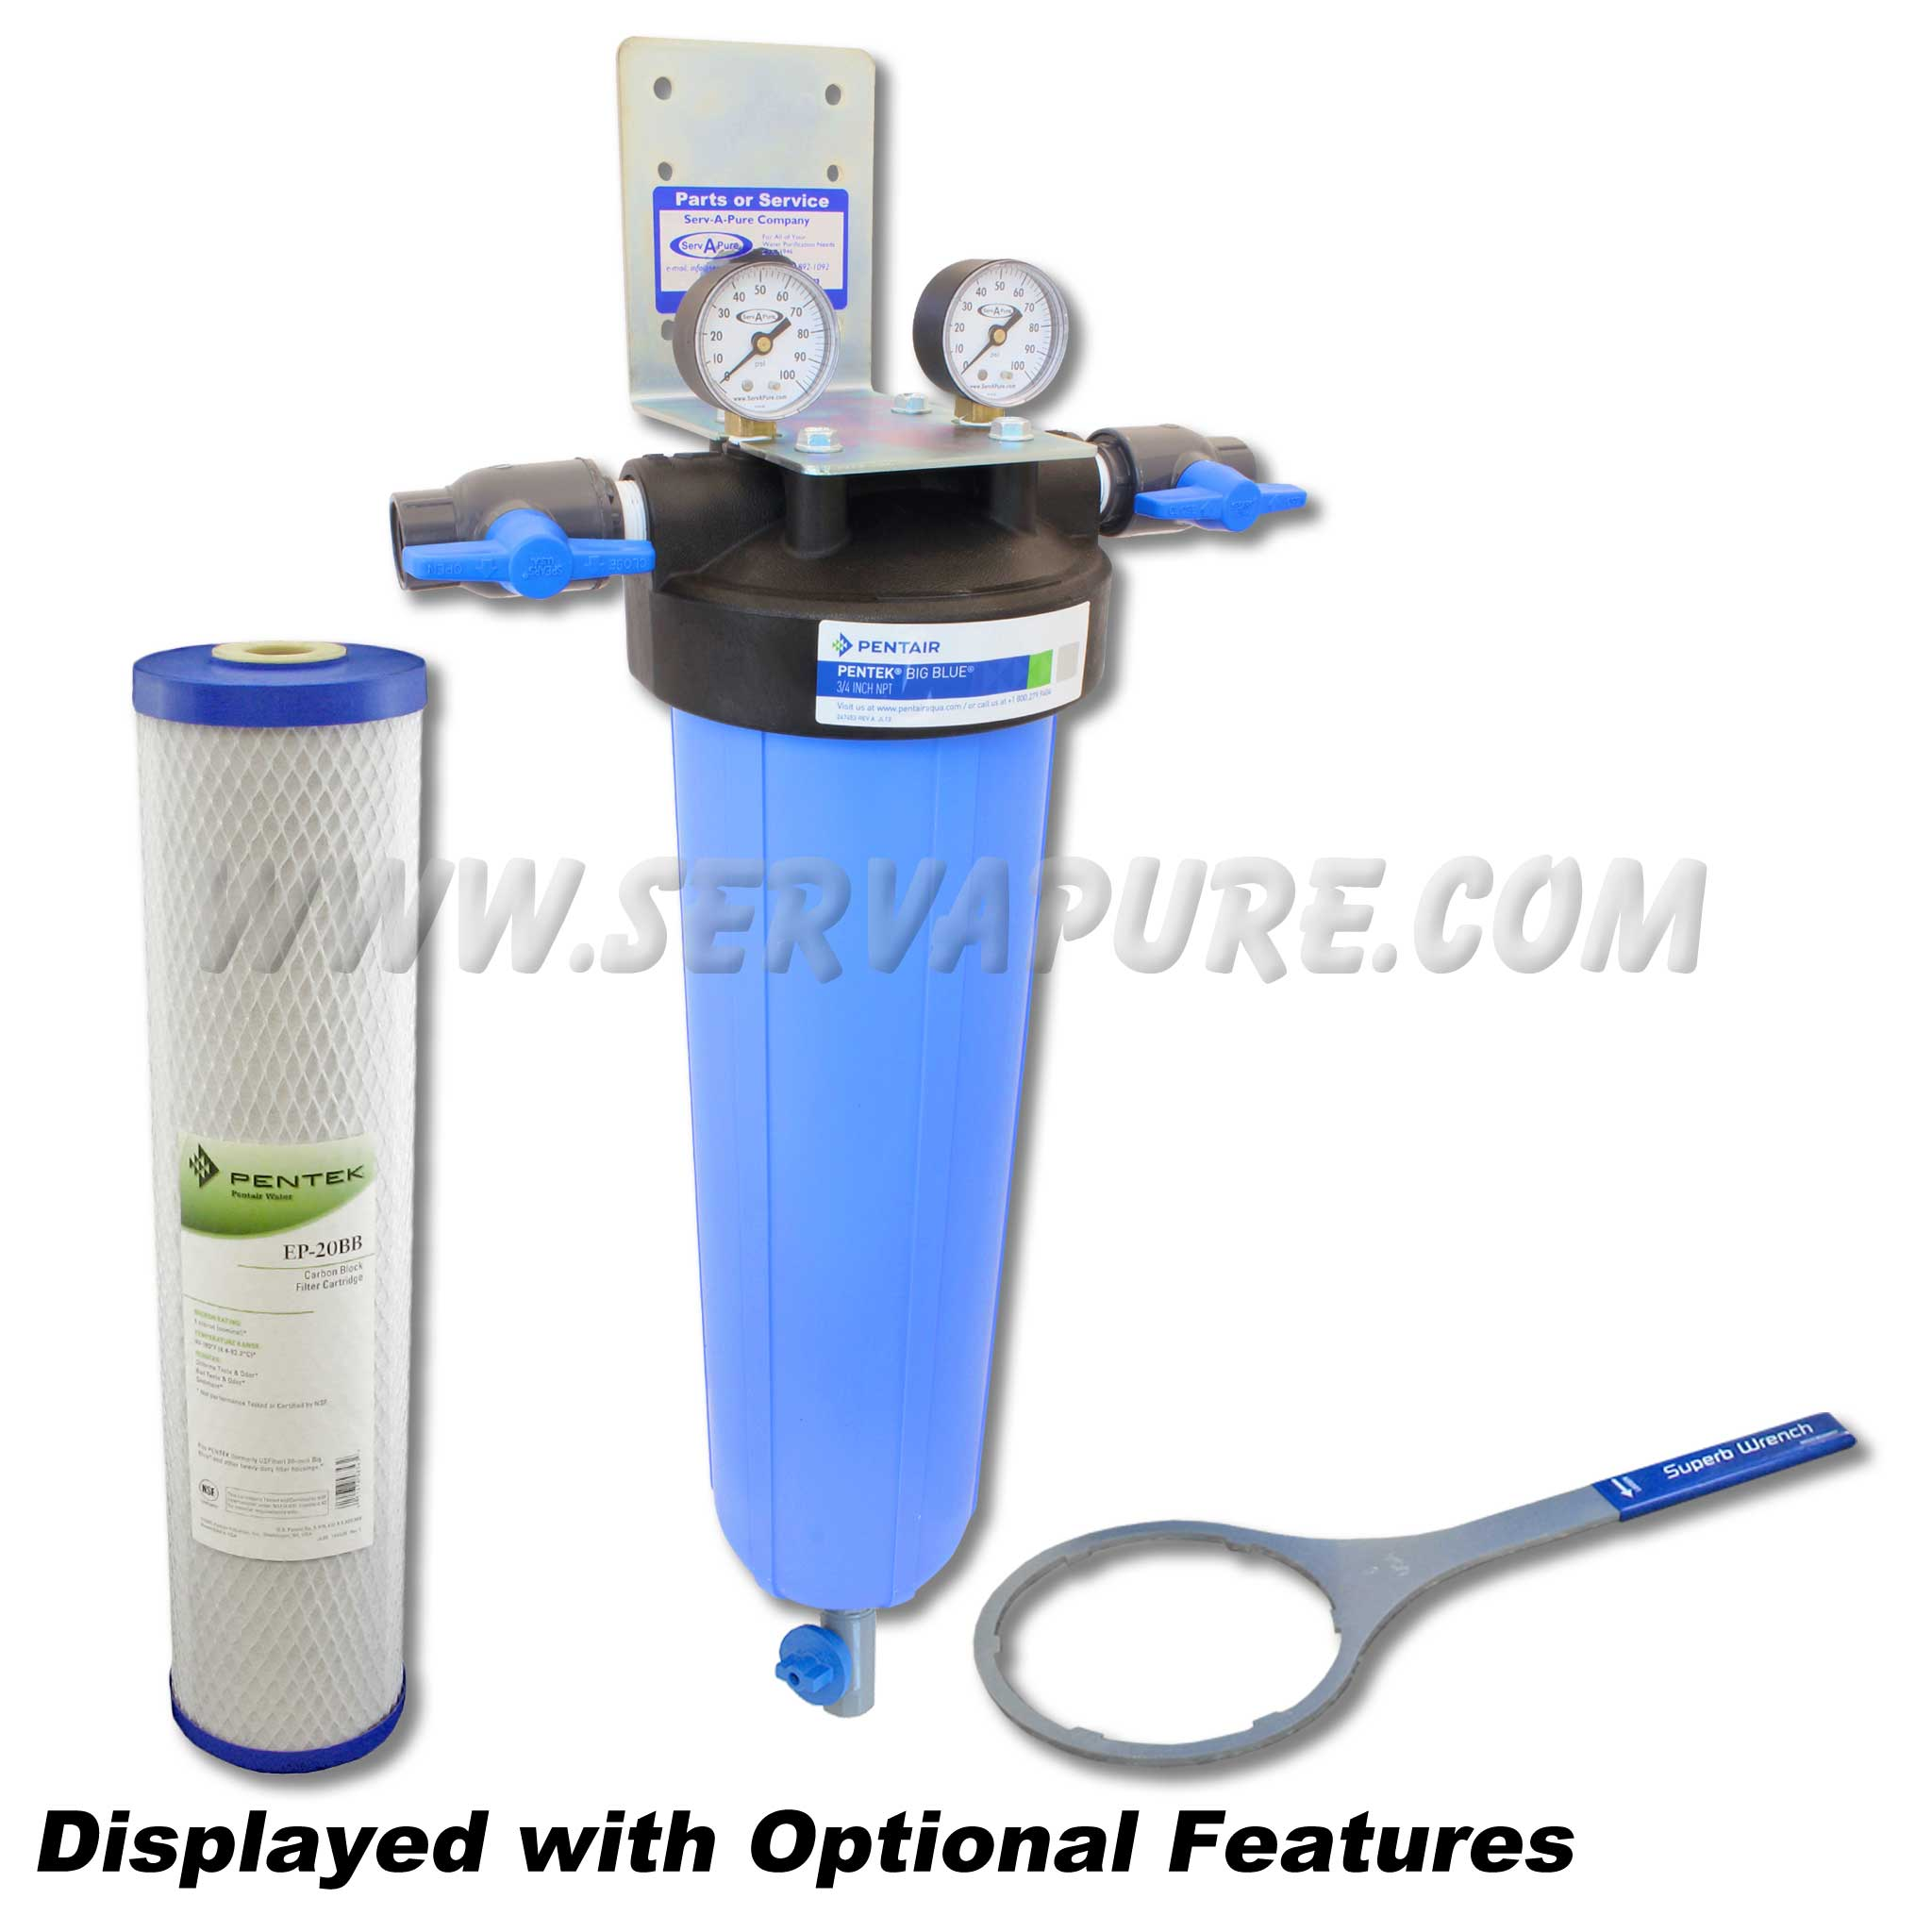 Carbon Water Filter System Serv A Pure 712002 Bbfs 2 Tor 20 Big Blue Whole House Taste Odor Removal Water Filter System